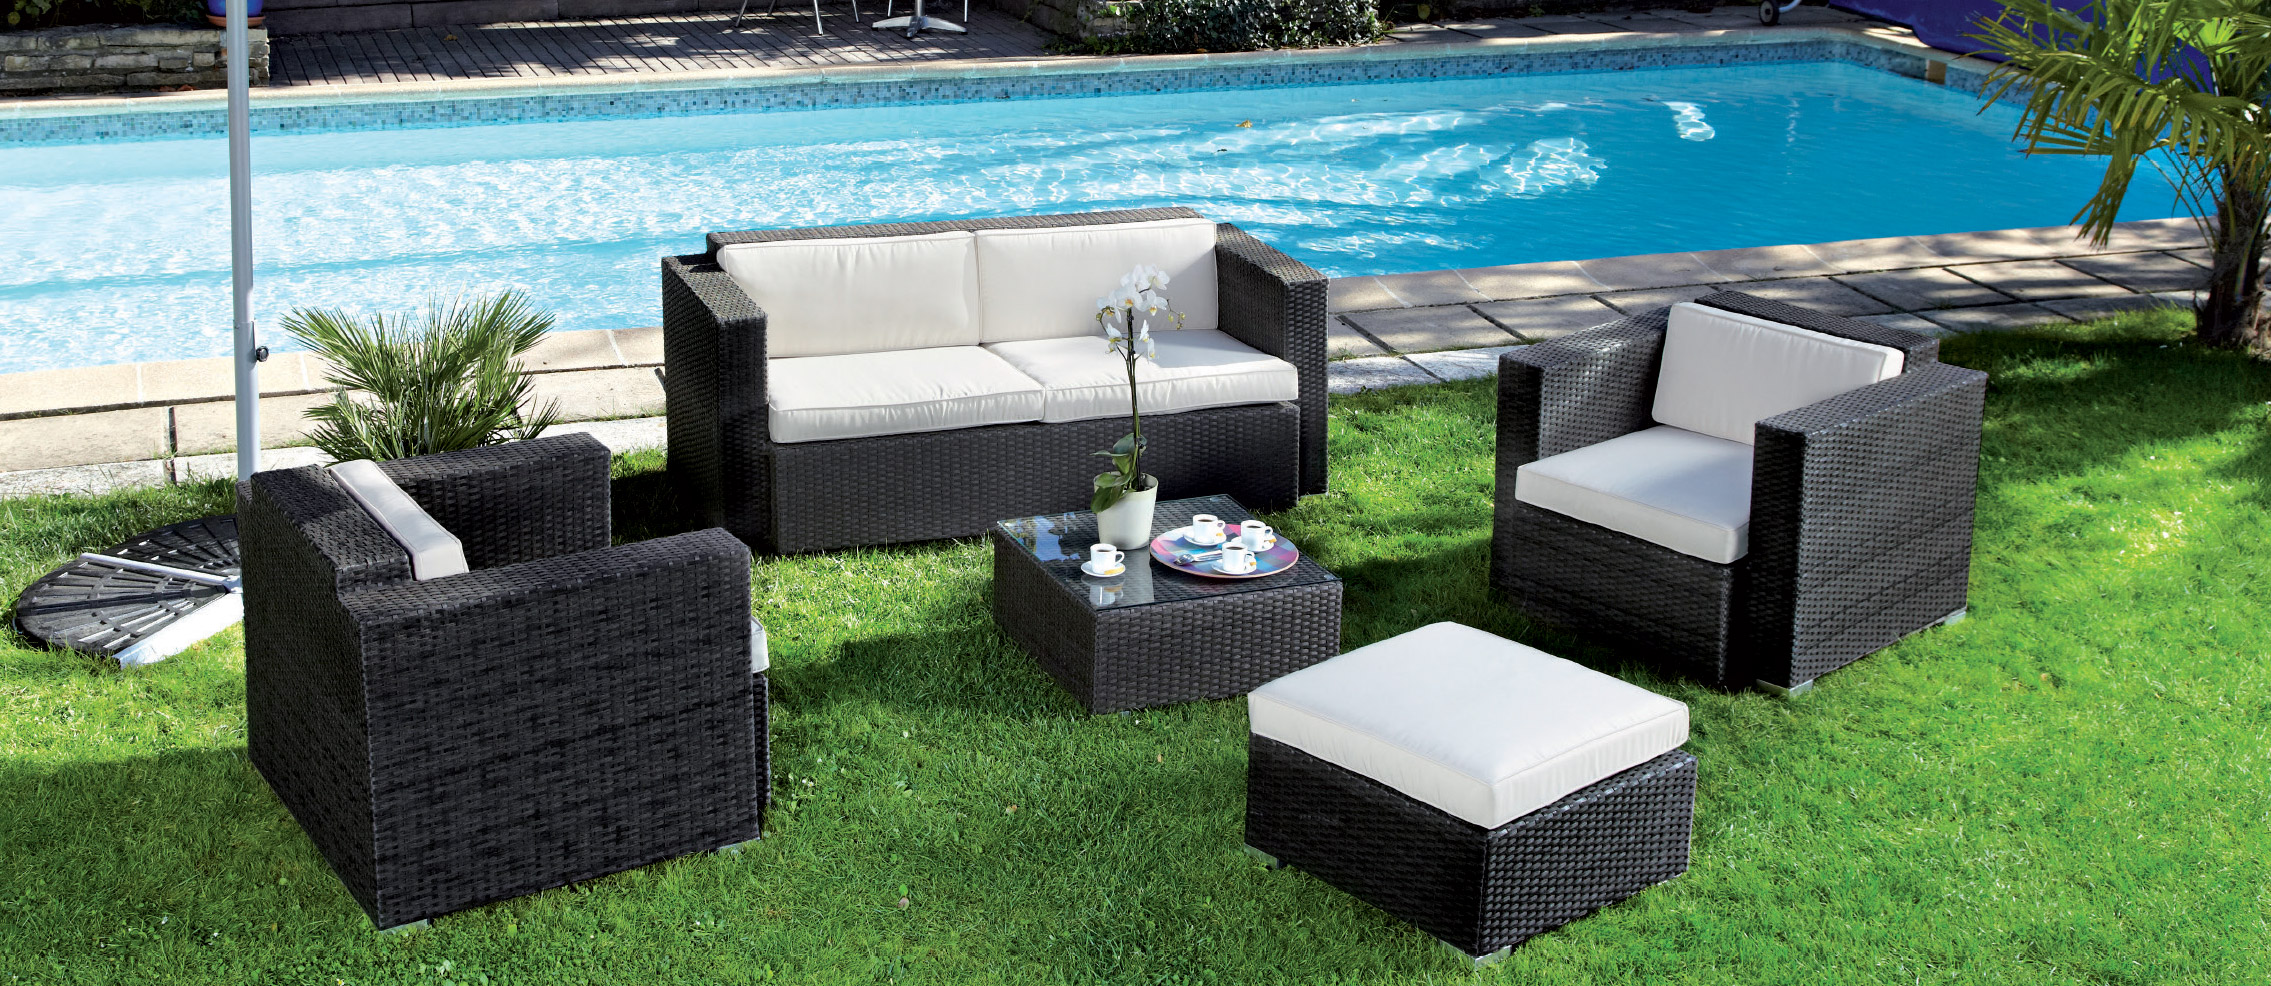 salon de jardin en r sine tress e pas cher belgique id es de d coration int rieure french decor. Black Bedroom Furniture Sets. Home Design Ideas